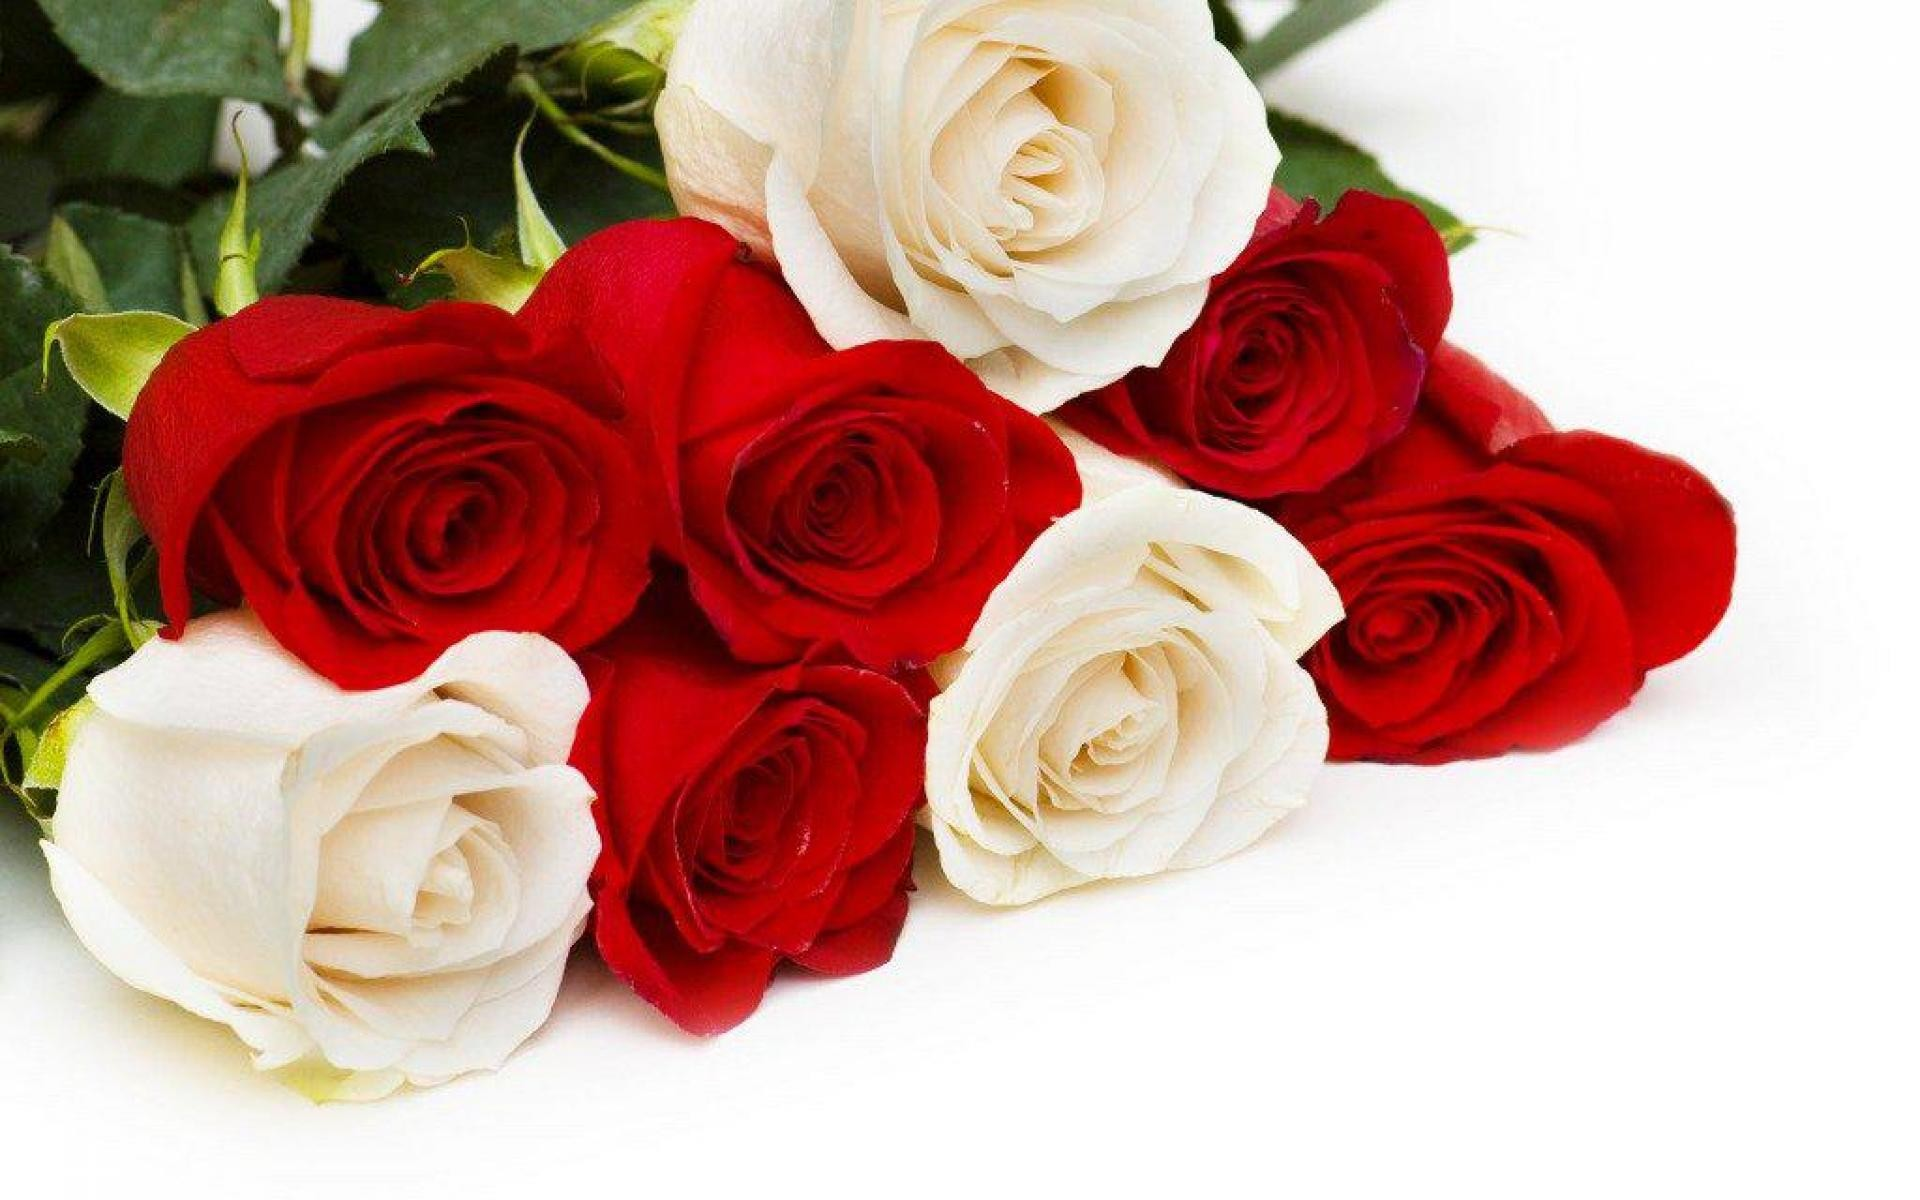 Beautiful Romantic Red Lovely Roses Gorgeous White - Beautiful Love Flowers Roses , HD Wallpaper & Backgrounds